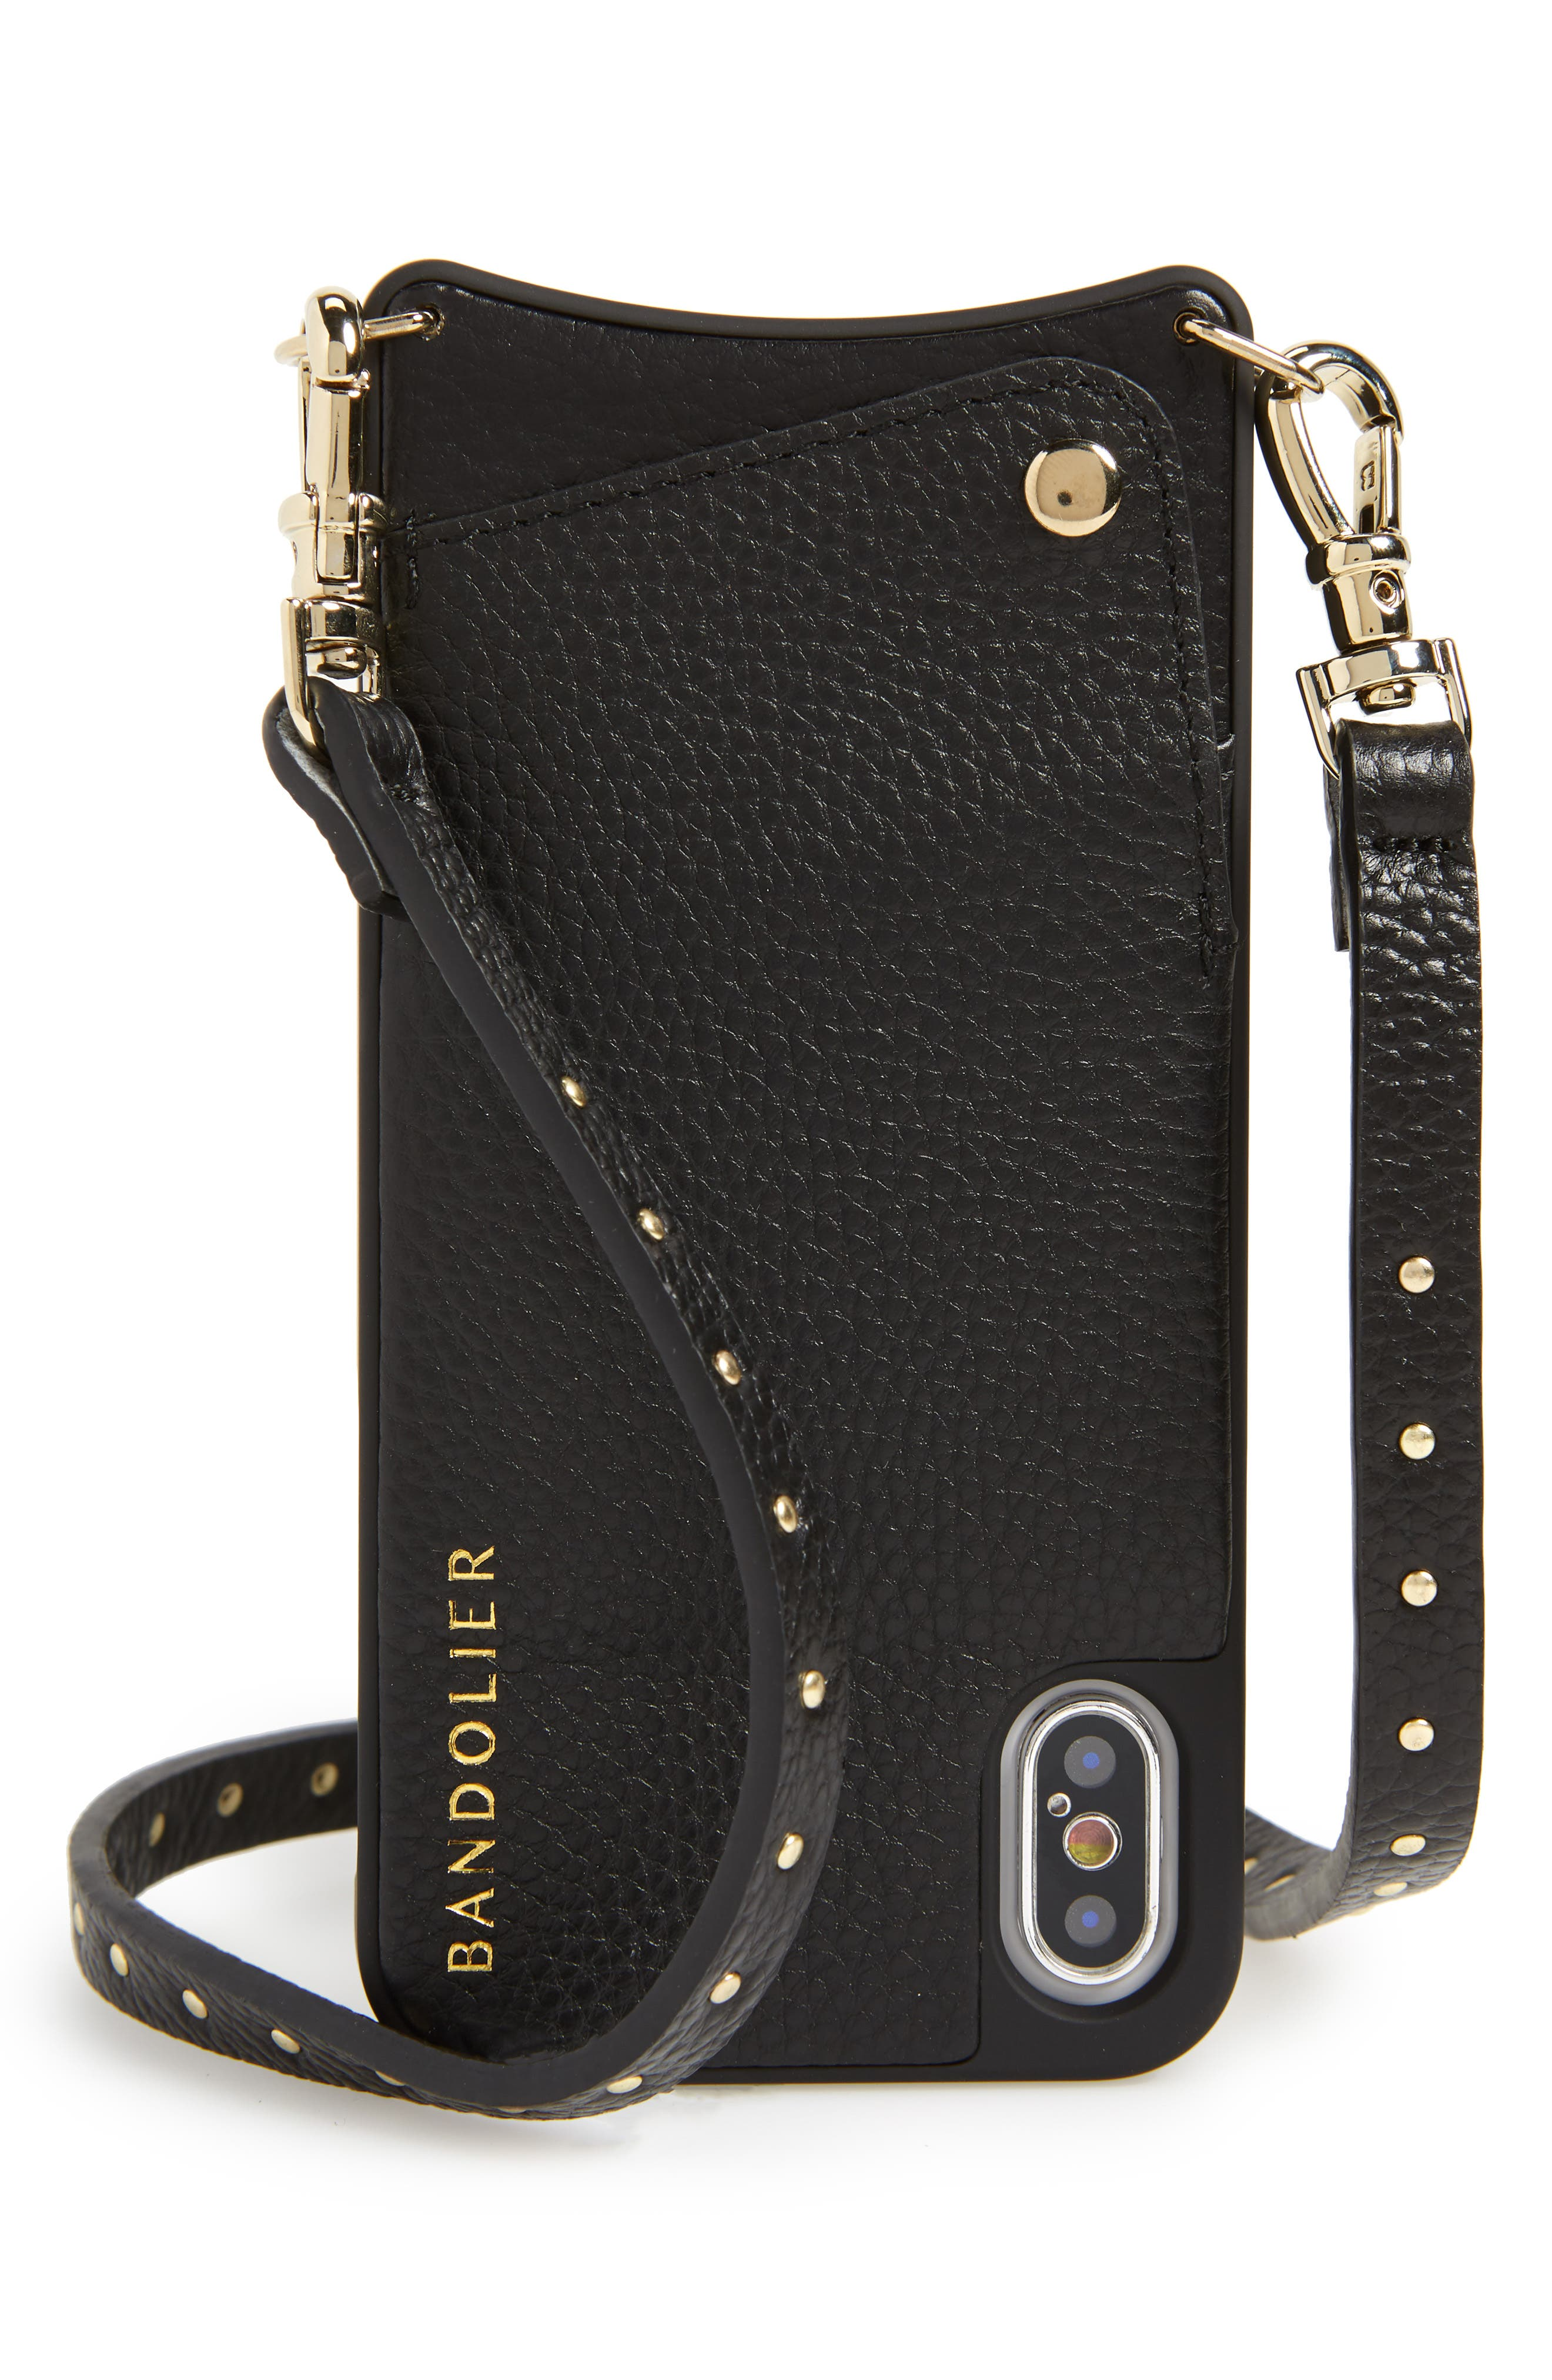 Nicole Pebbled Leather 6/7/8 & 6/7/8 Plus Crossbody Case,                             Main thumbnail 1, color,                             BLACK/ GOLD